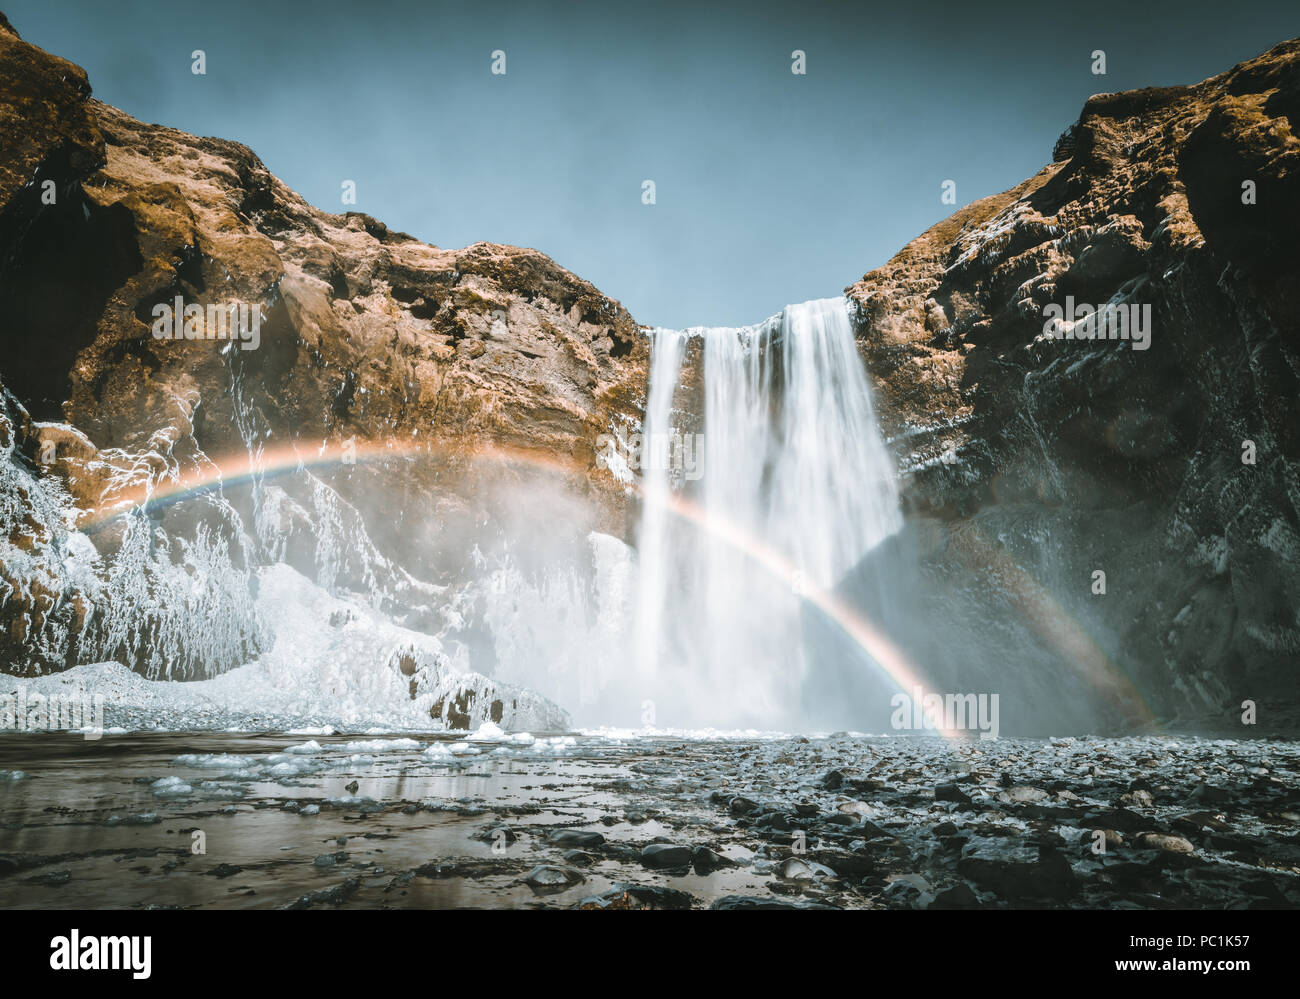 Skogafoss waterfall in Iceland with rainbow on a sunny day with blue sky. - Stock Image